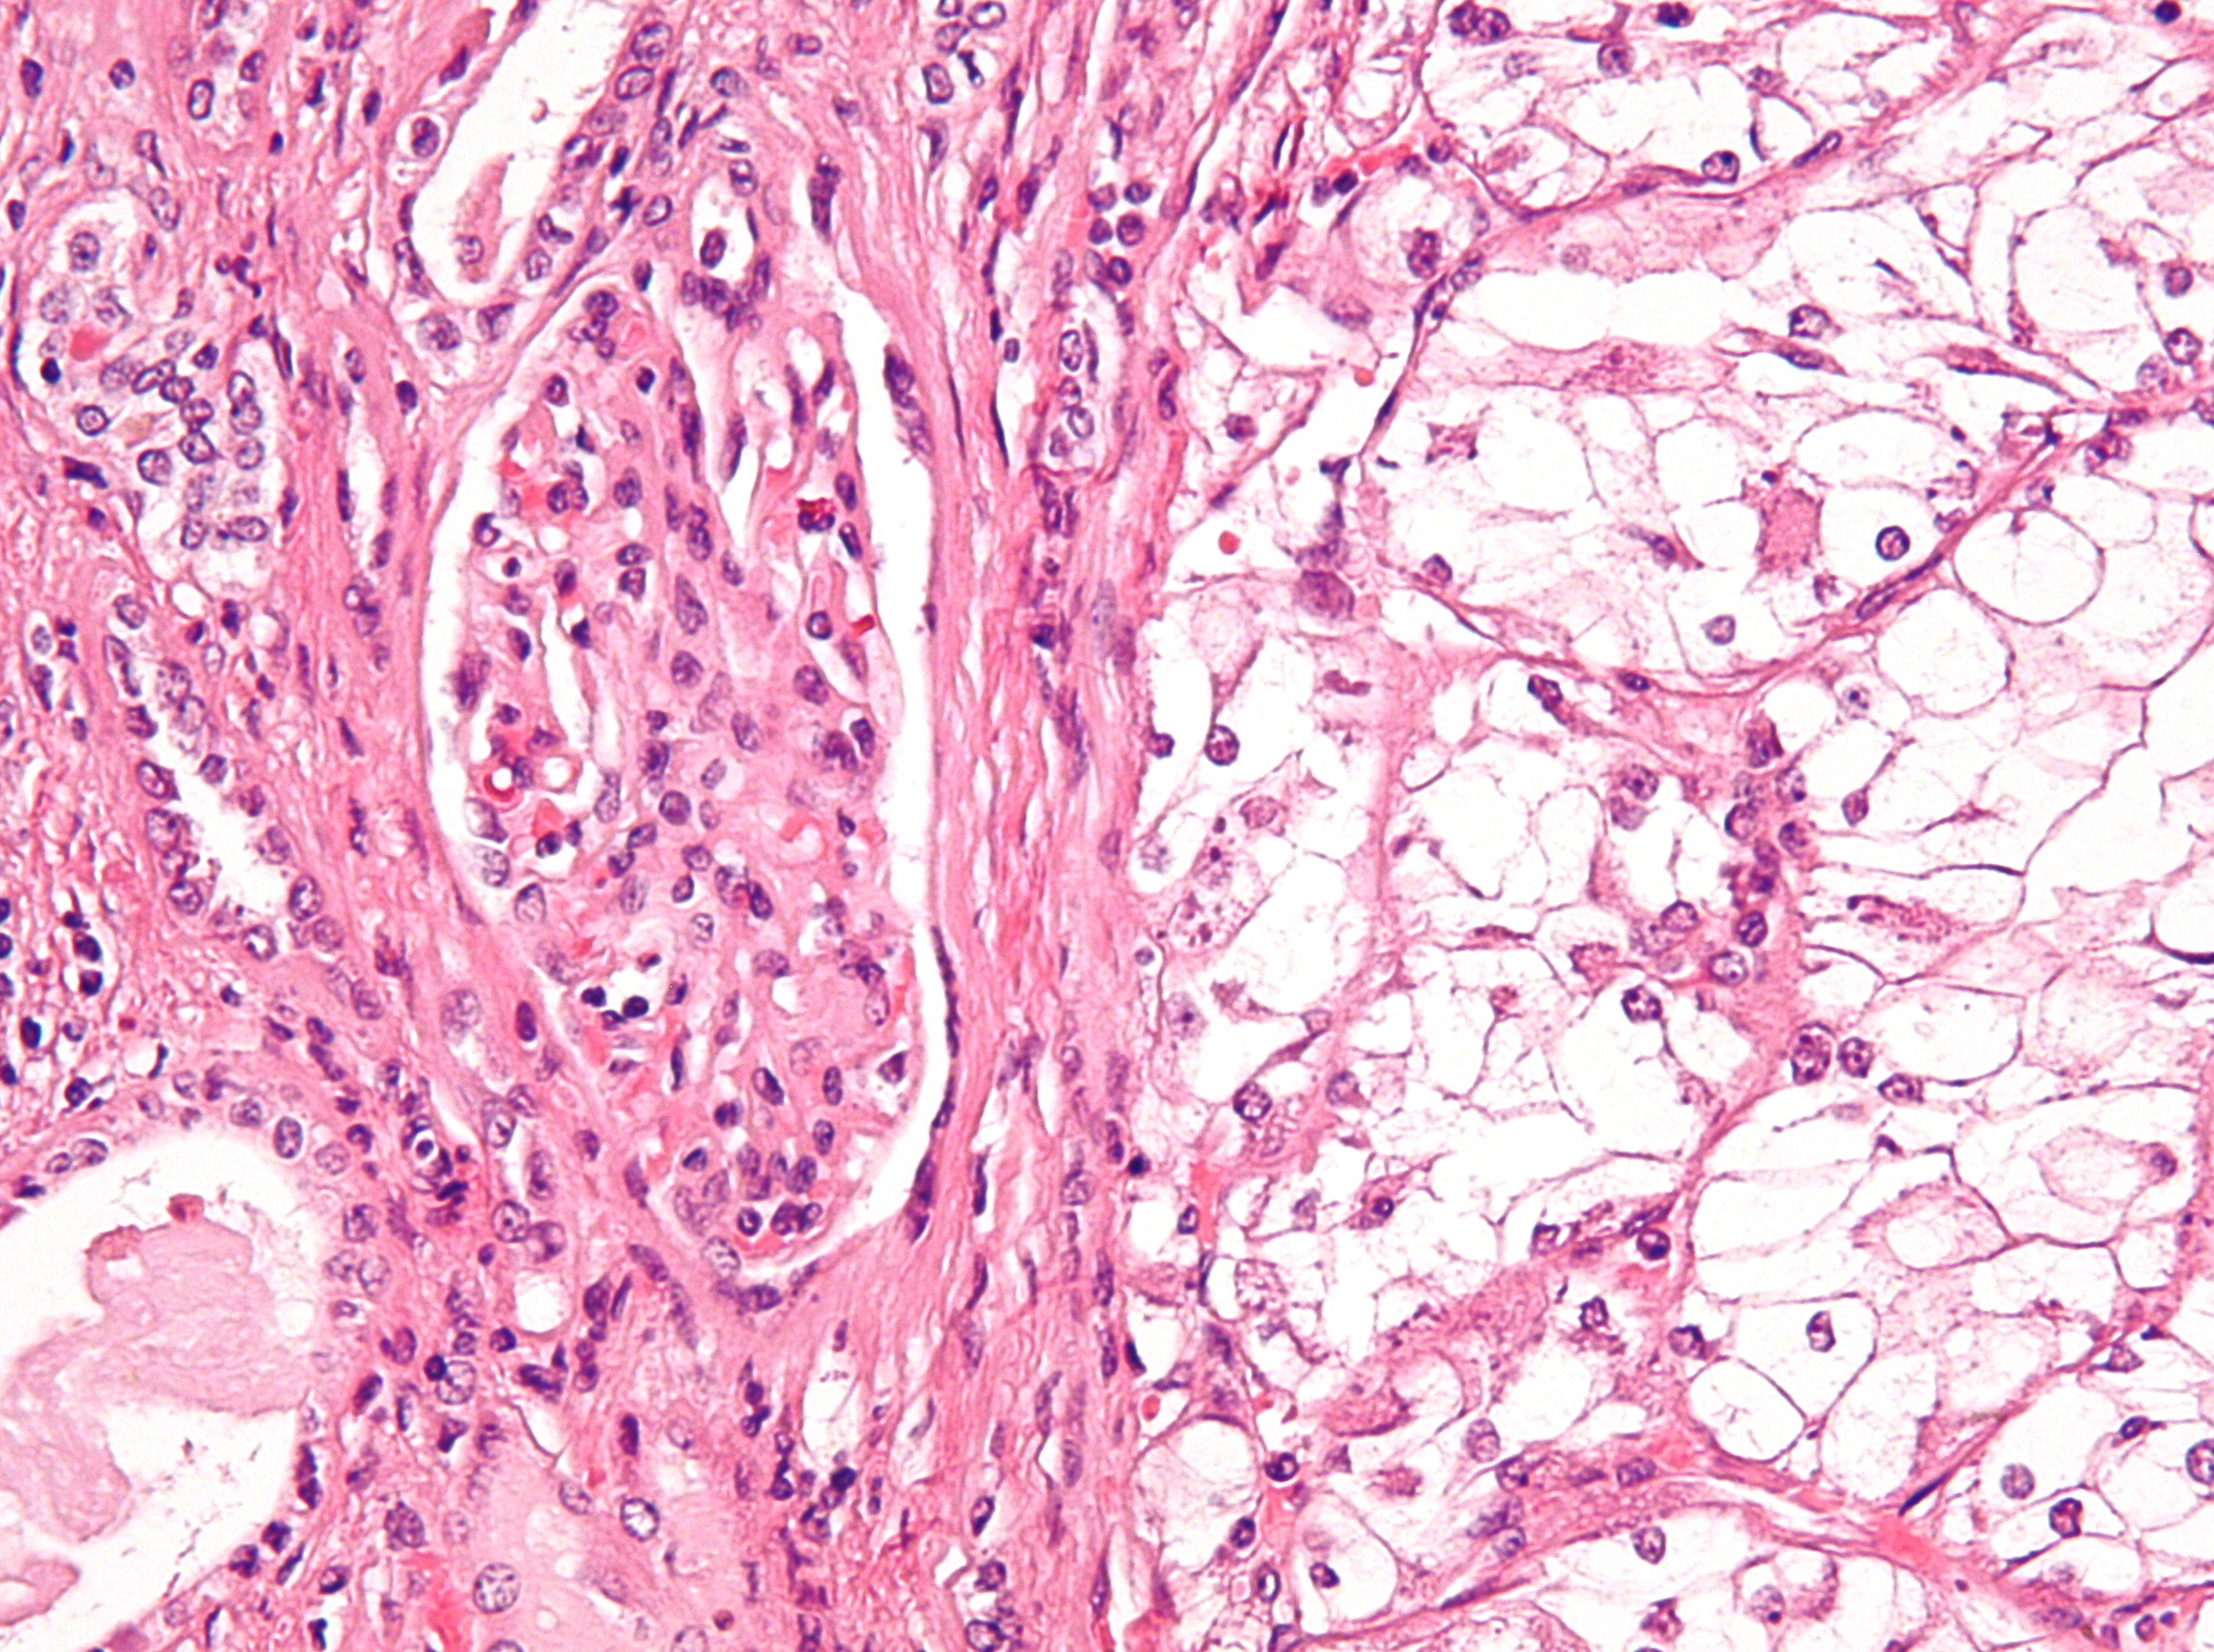 cancer renal c64